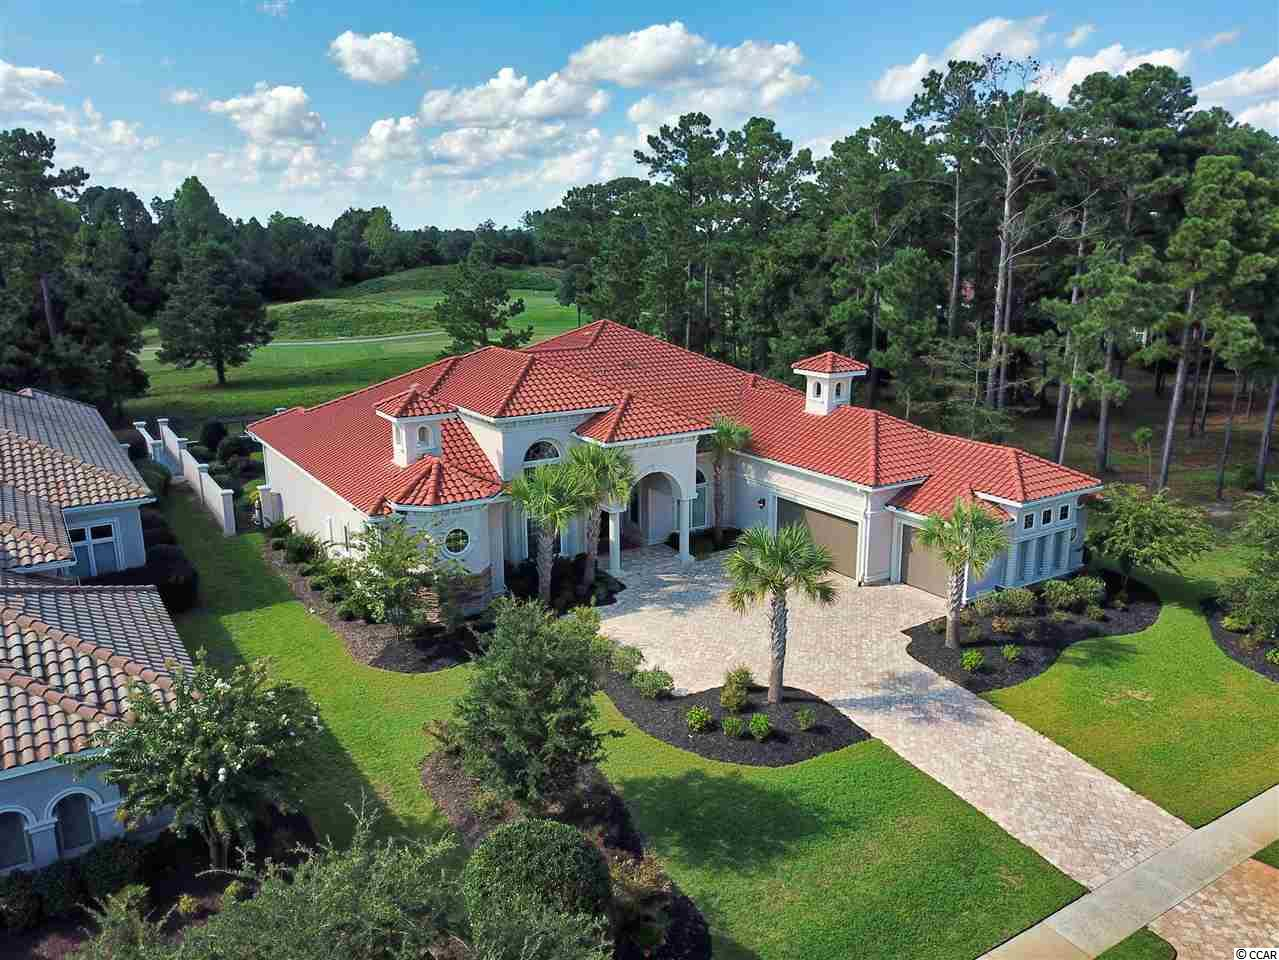 An impeccable home built in 2015 by Omni Home that offers 4 spacious bedrooms, 5.5 baths,out door pool and cookout area and a split 3 car garage.This property sits on 0.46 acre viewing the members club golf course. Inside you will find elegance & sophistication everywhere you look. From the high end granite and appliances in the chefs kitchen, this one you have to see to appreciate the fine details….Grande Dunes. Stretching from the Ocean to the Carolina Bays Preserve, this 2200 acre development is amenity-rich and filled with lifestyle opportunities unrivaled in the market. Owners at Grande Dunes enjoy a 25,000 square foot Ocean Club that boasts exquisite dining, oceanfront pools with food & beverage service, along with meeting rooms and fun activities. Additionally, the community has two 18-hole golf courses, including the area's only truly private course designed by Nick Price, along with several on-site restaurants, deep water marina, Har-tru tennis facility and miles or biking/walking trails!